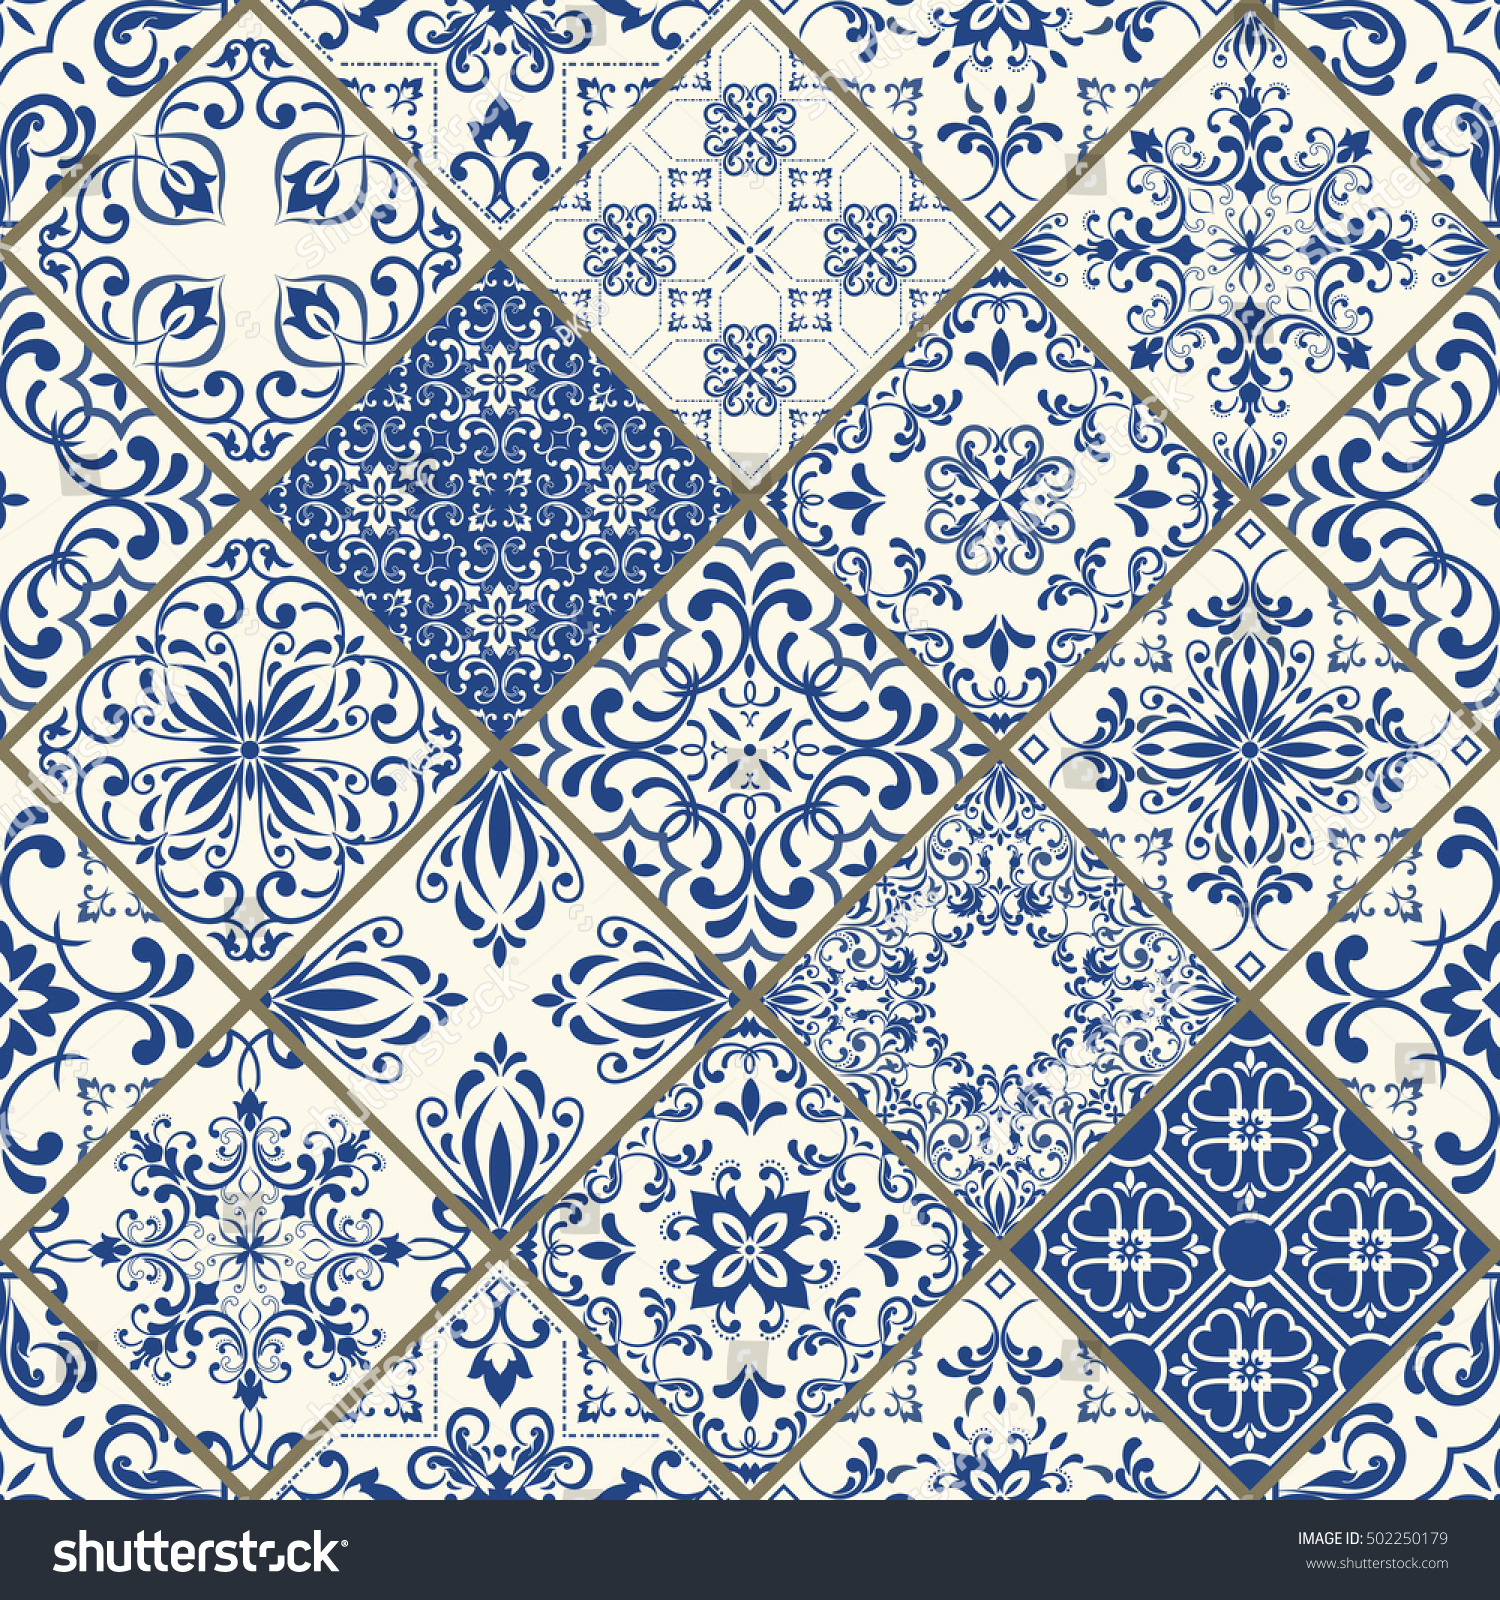 Royalty-free Vintage seamless pattern in Portugal… #502250179 Stock ...